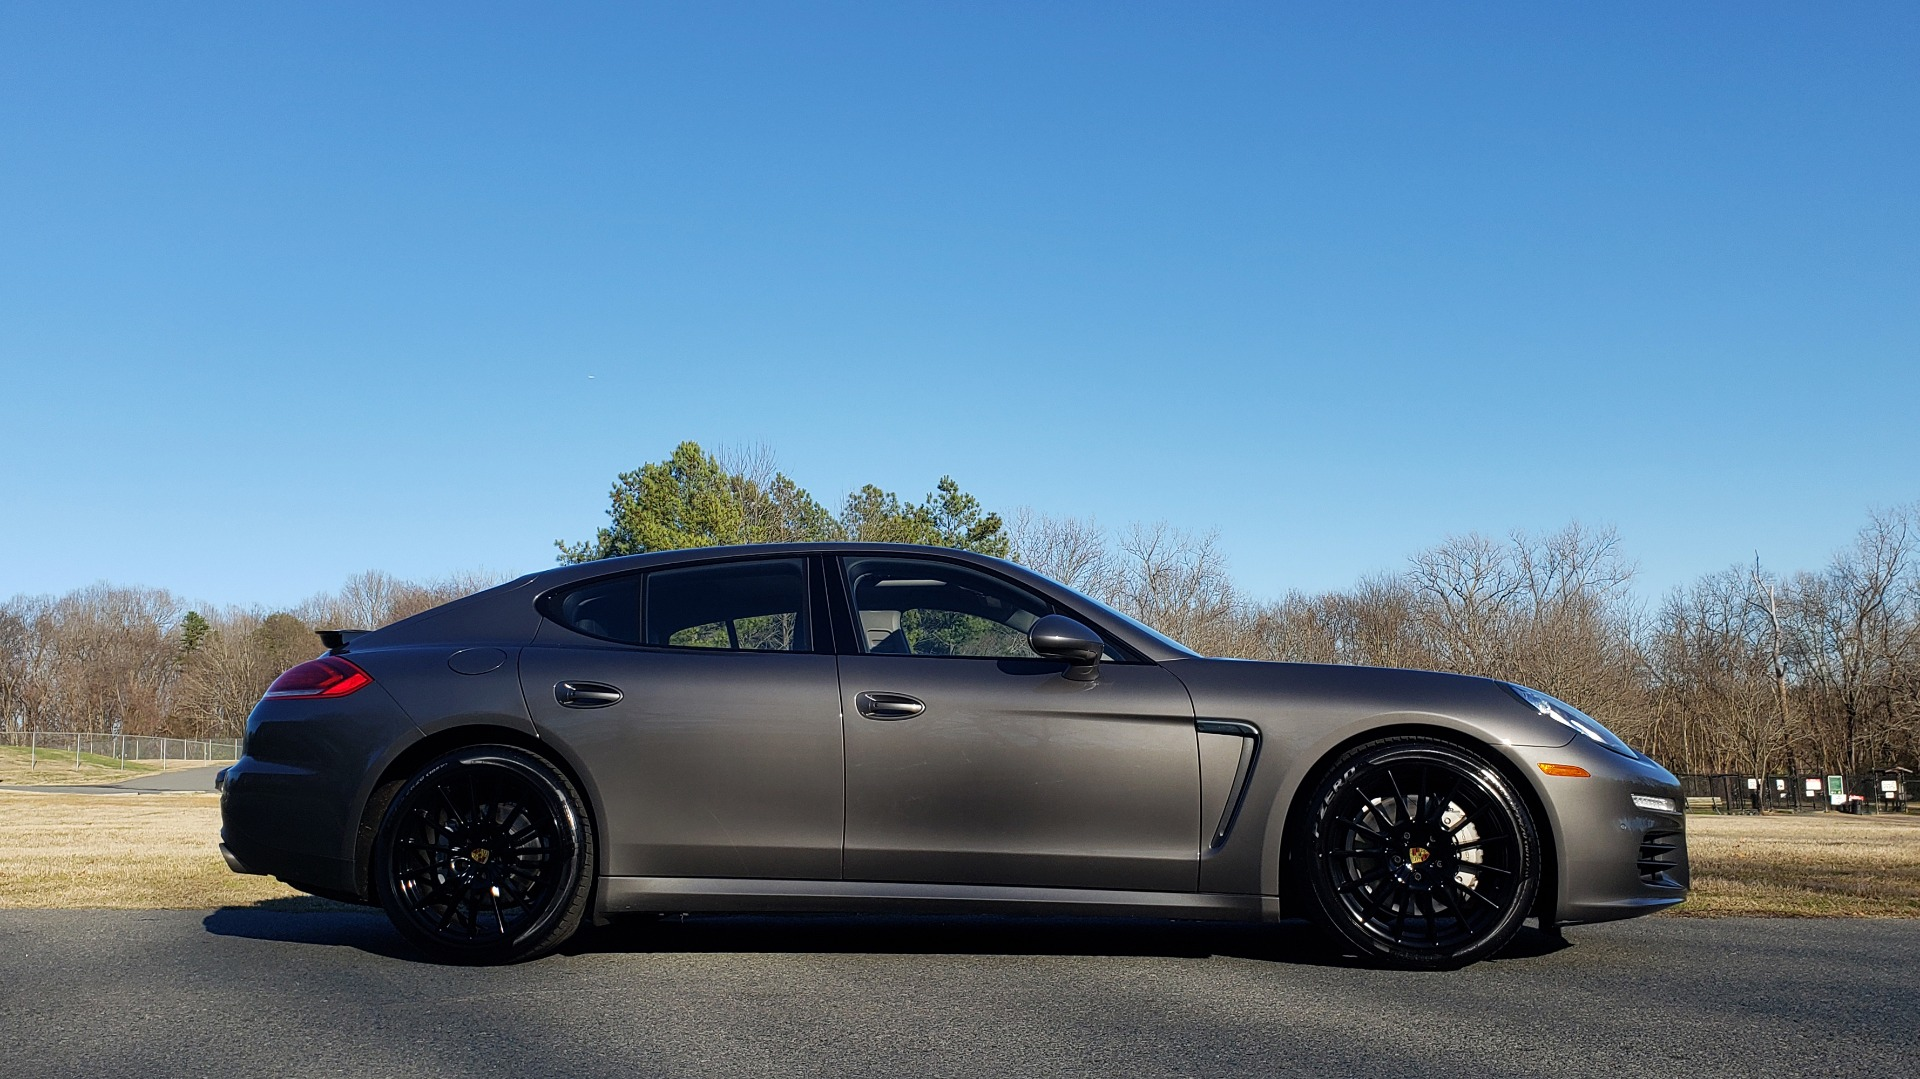 Used 2016 Porsche PANAMERA S / TURBO V6 / PDK / NAV / BOSE / SNRF / LDW / REARVIEW for sale Sold at Formula Imports in Charlotte NC 28227 37